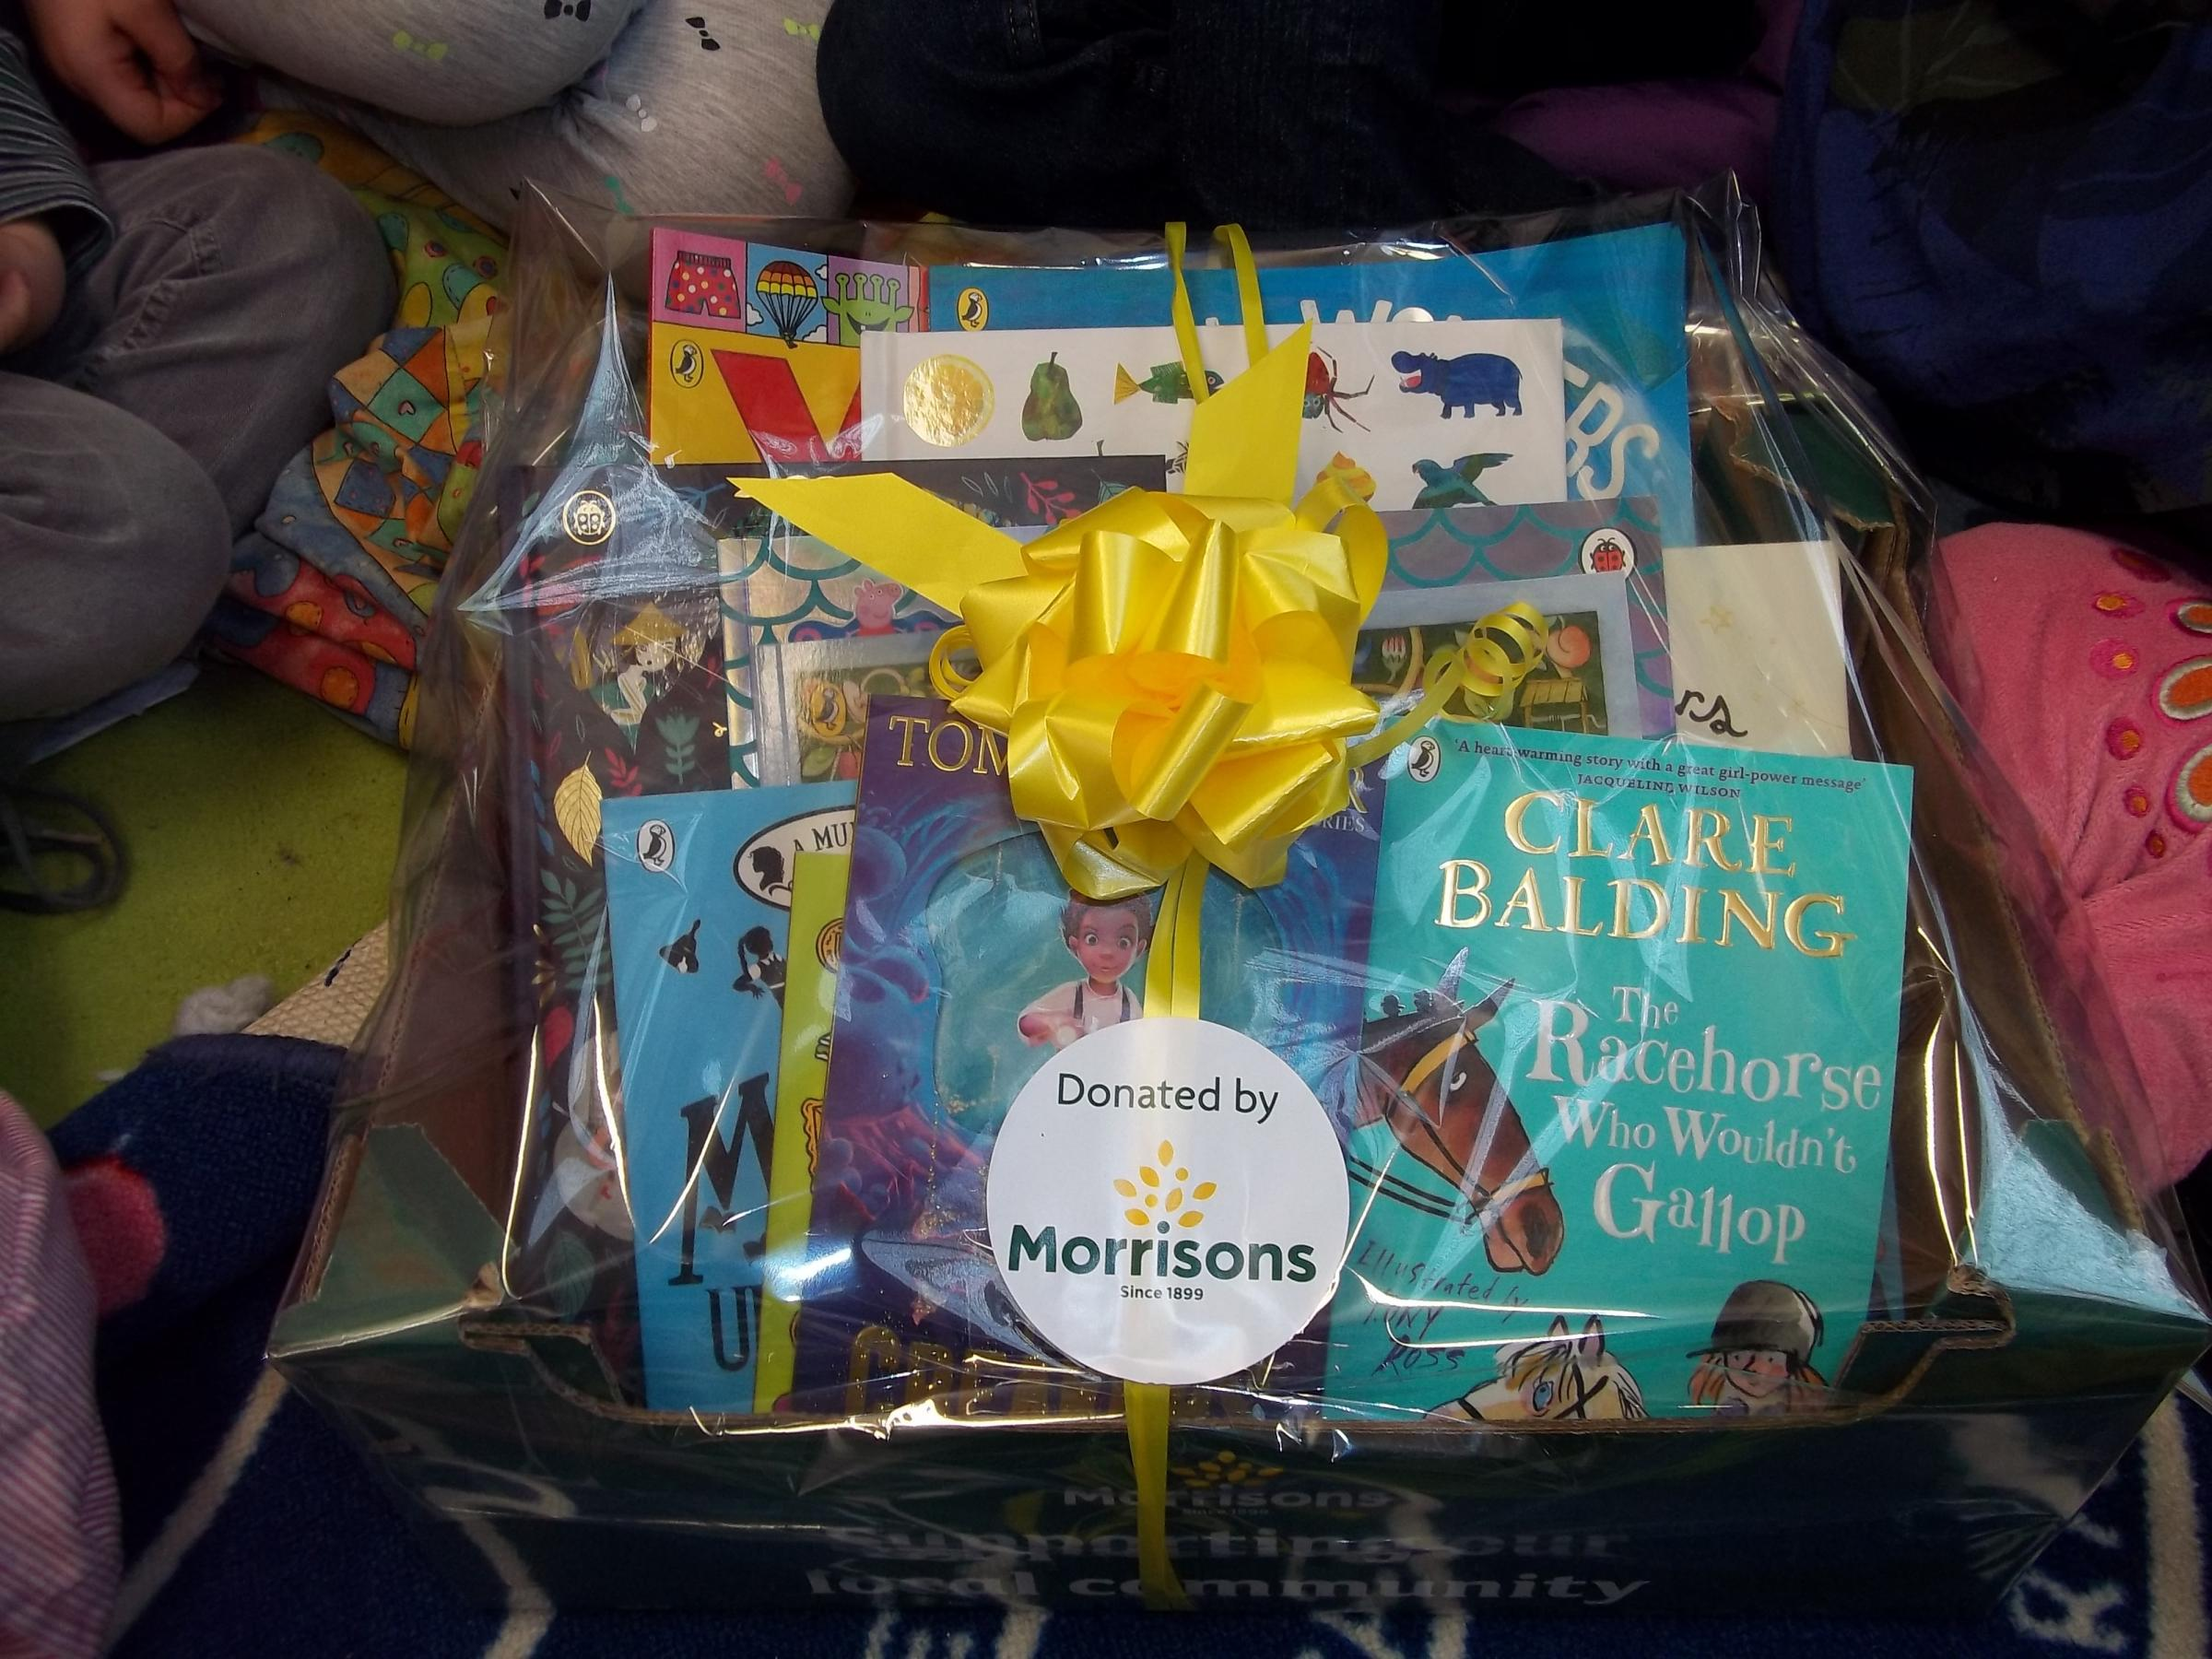 The basket of books donated by7 Morrisons to The Avenue School